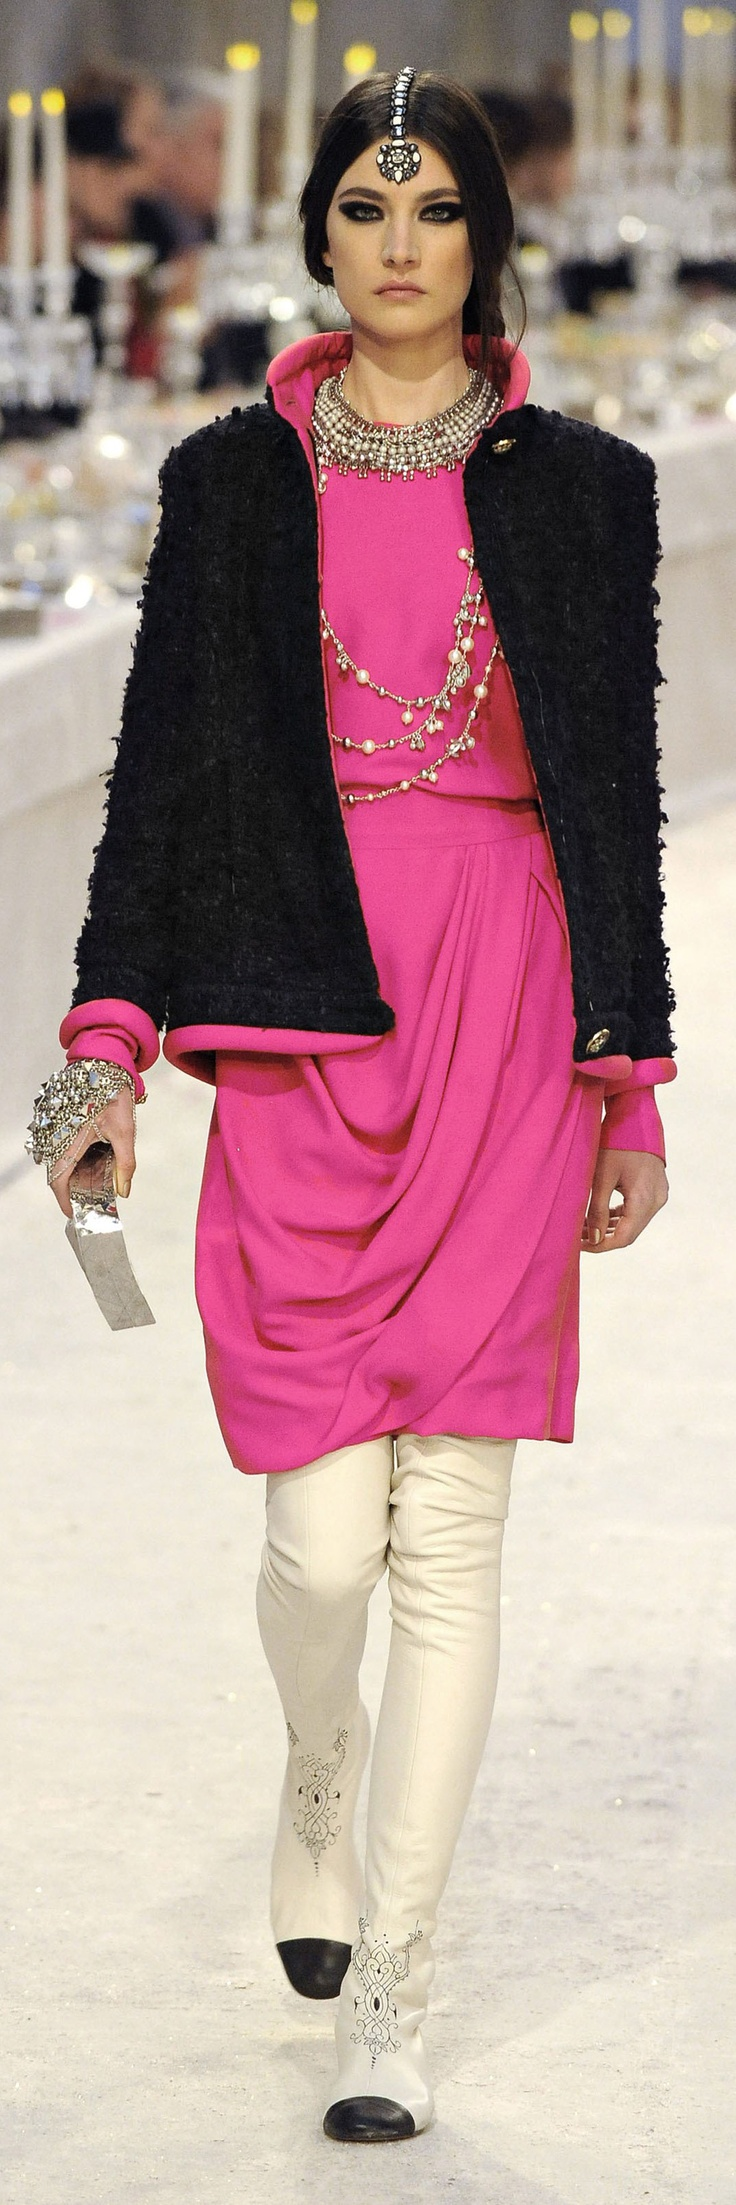 chanels influence on fashion essay This pioneer of fashion will have a long-lasting influence in fashion designs to come, because her style will always stand for what she believed in – simplicity and everlasting elegance how did coco chanel set herself apart.